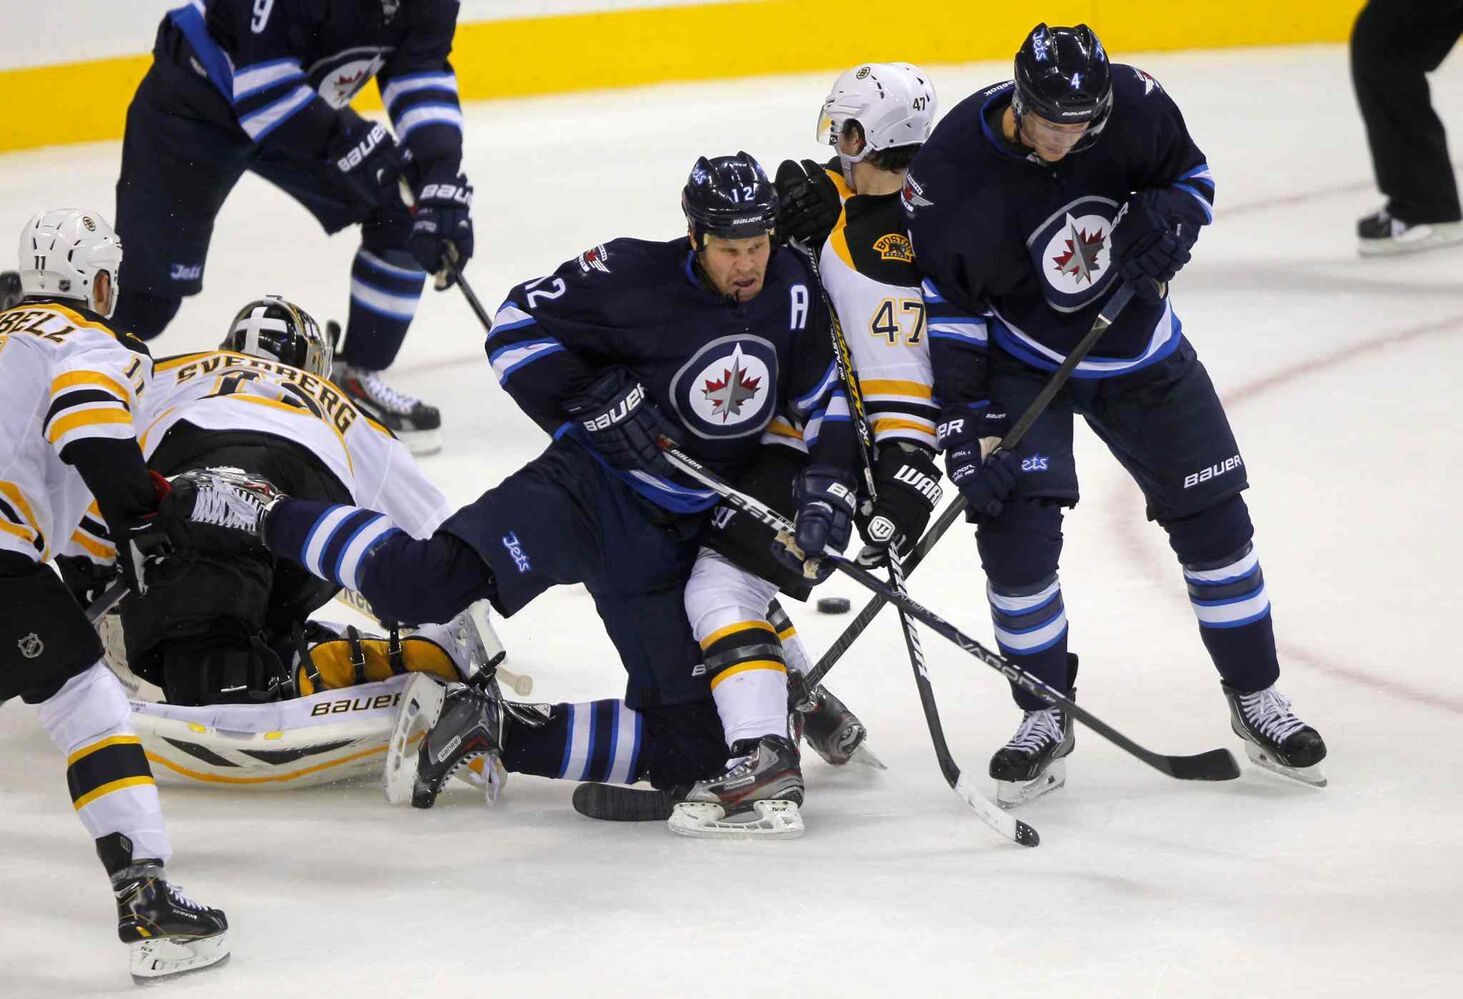 Olli Jokinen (centre) and Paul Postma (right) squeeze Torey Krug off the puck.